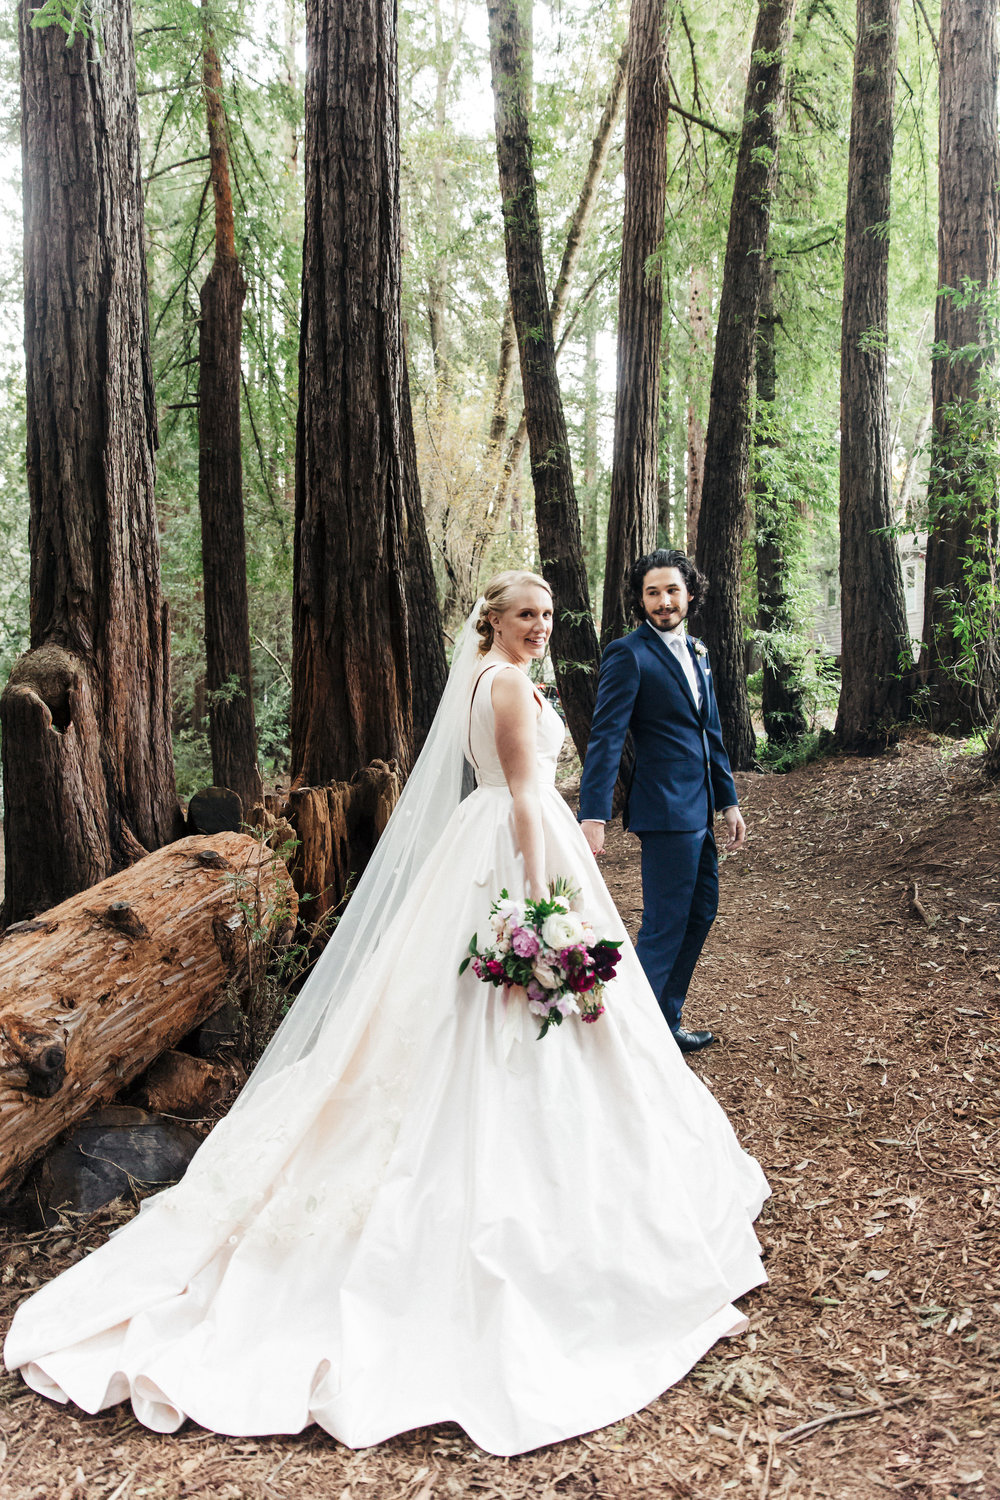 Elegant garden wedding at The Outdoor Art Club in Mill Valley, California with Torrey Fox Photography, Sage Catering, and Oh Splendid Day.